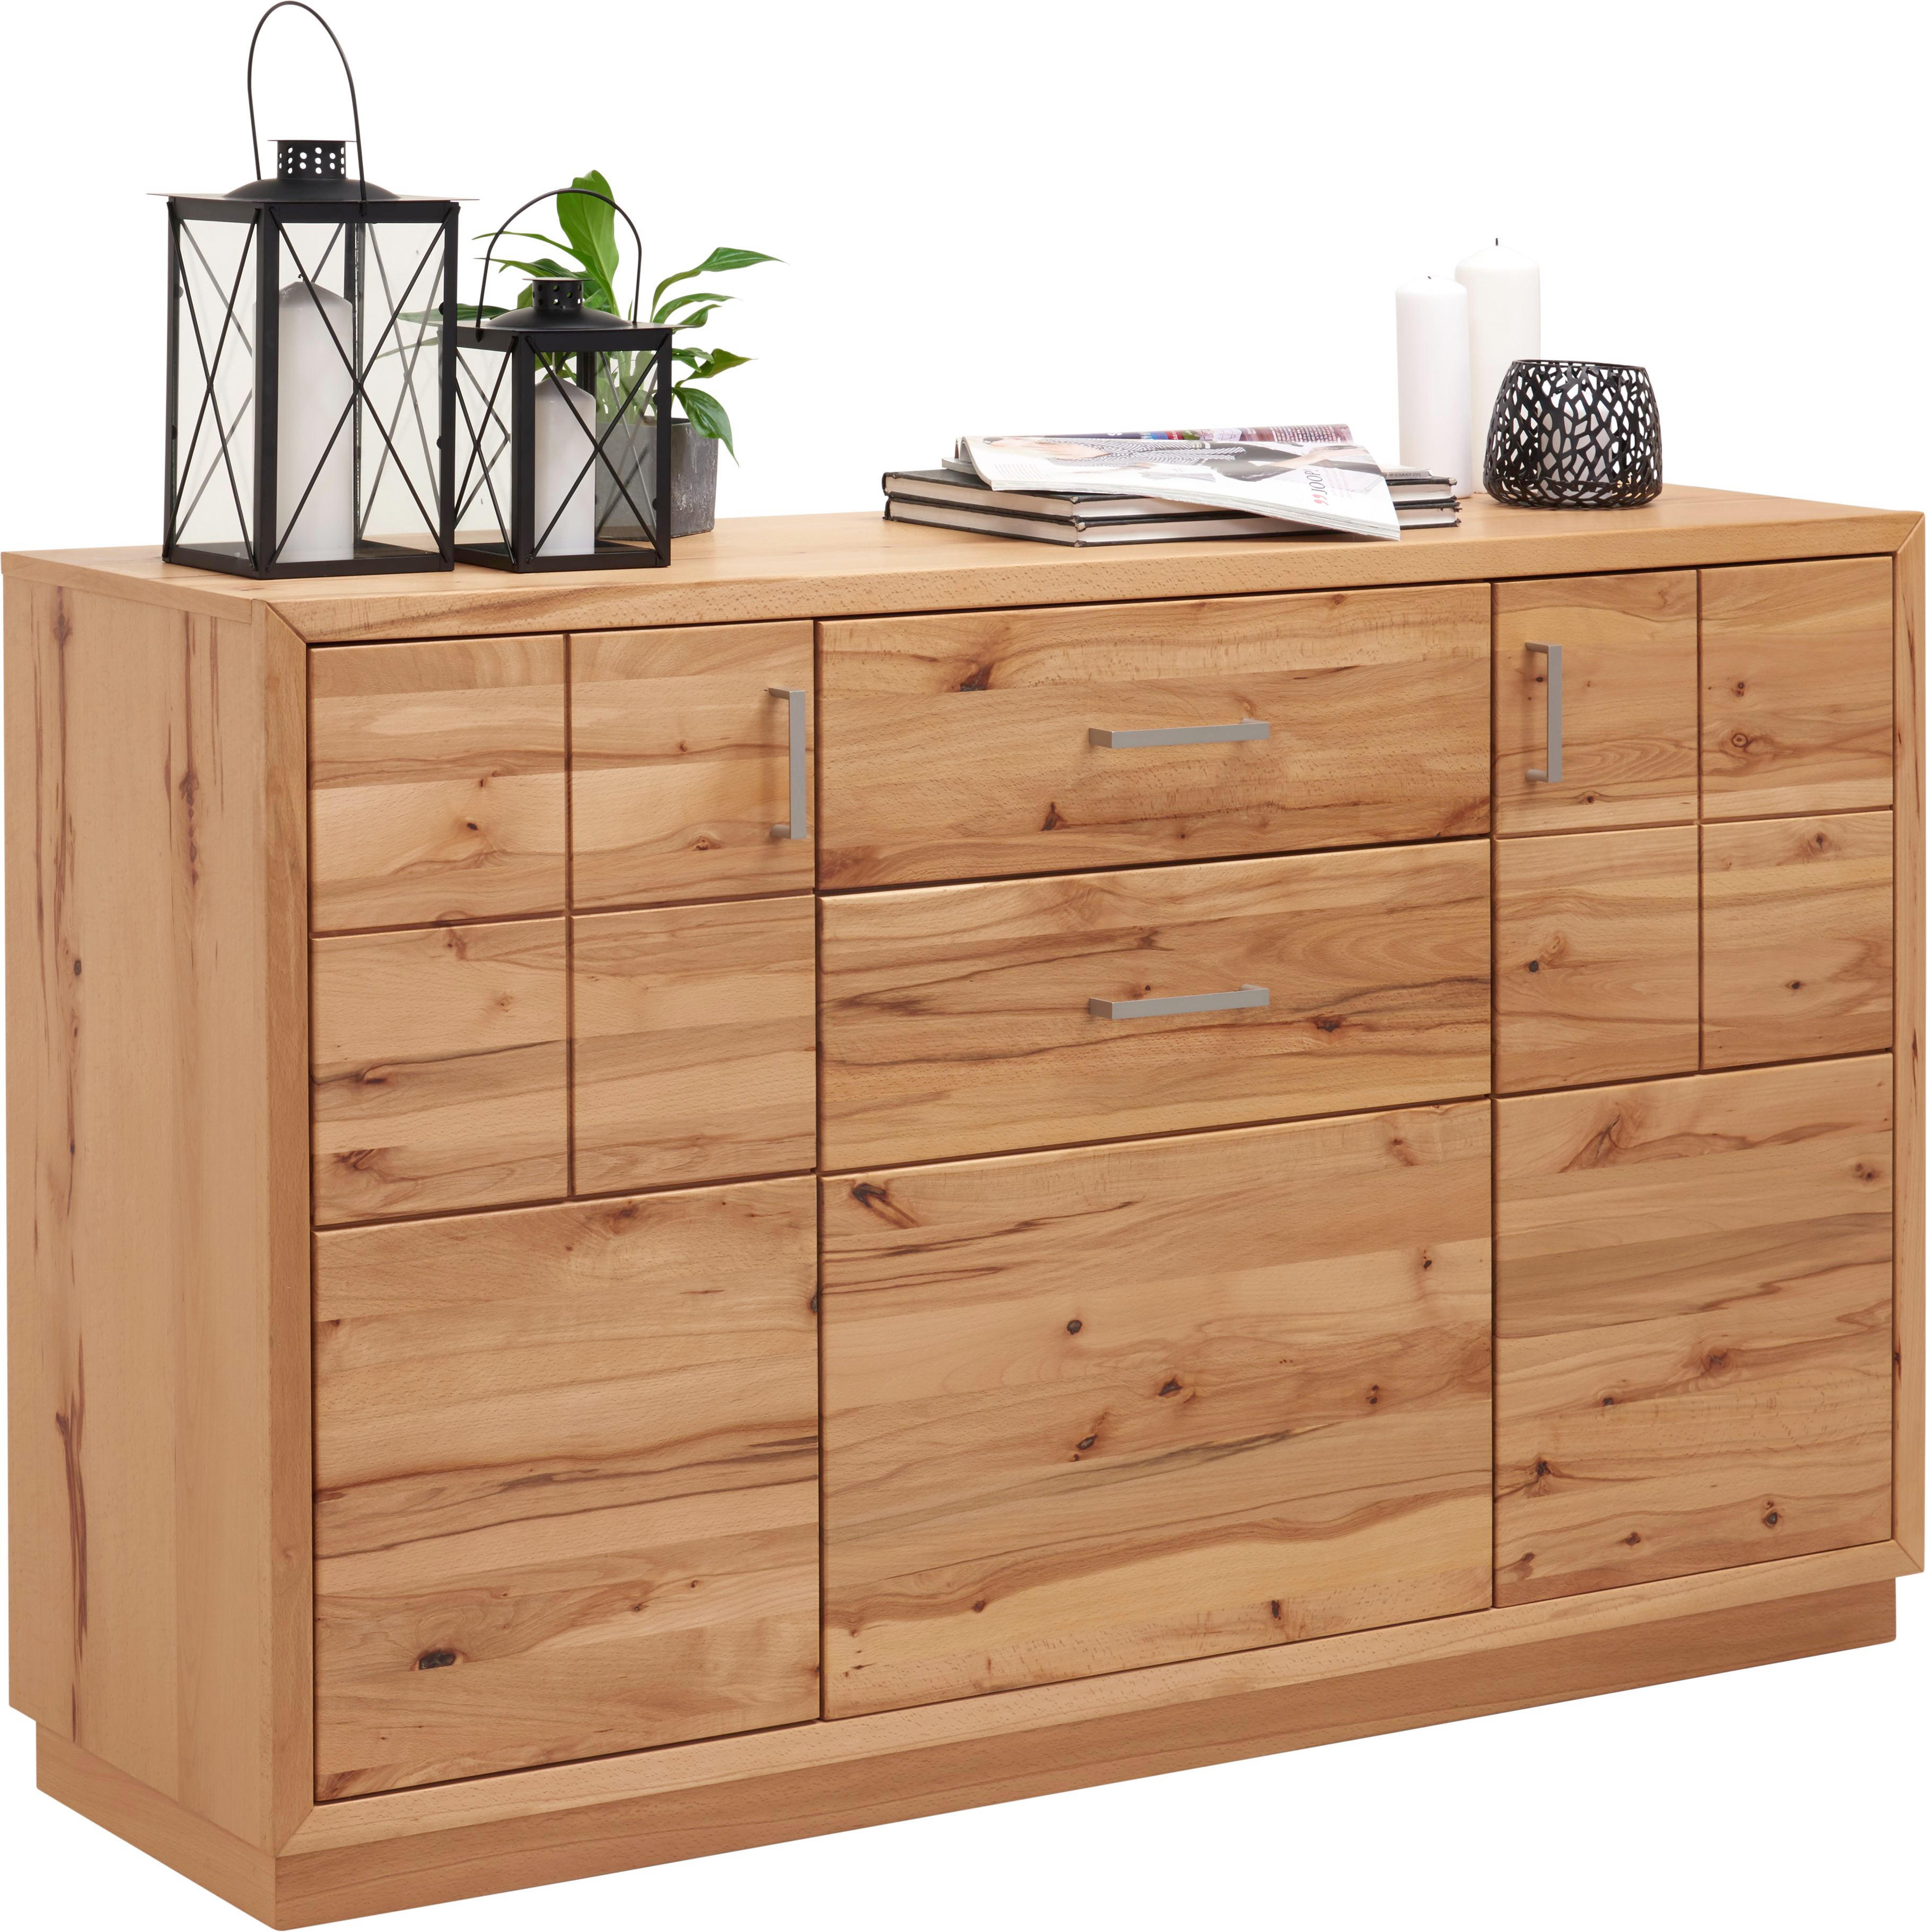 Sideboard Holz Metall Sideboard Metall Und Holz